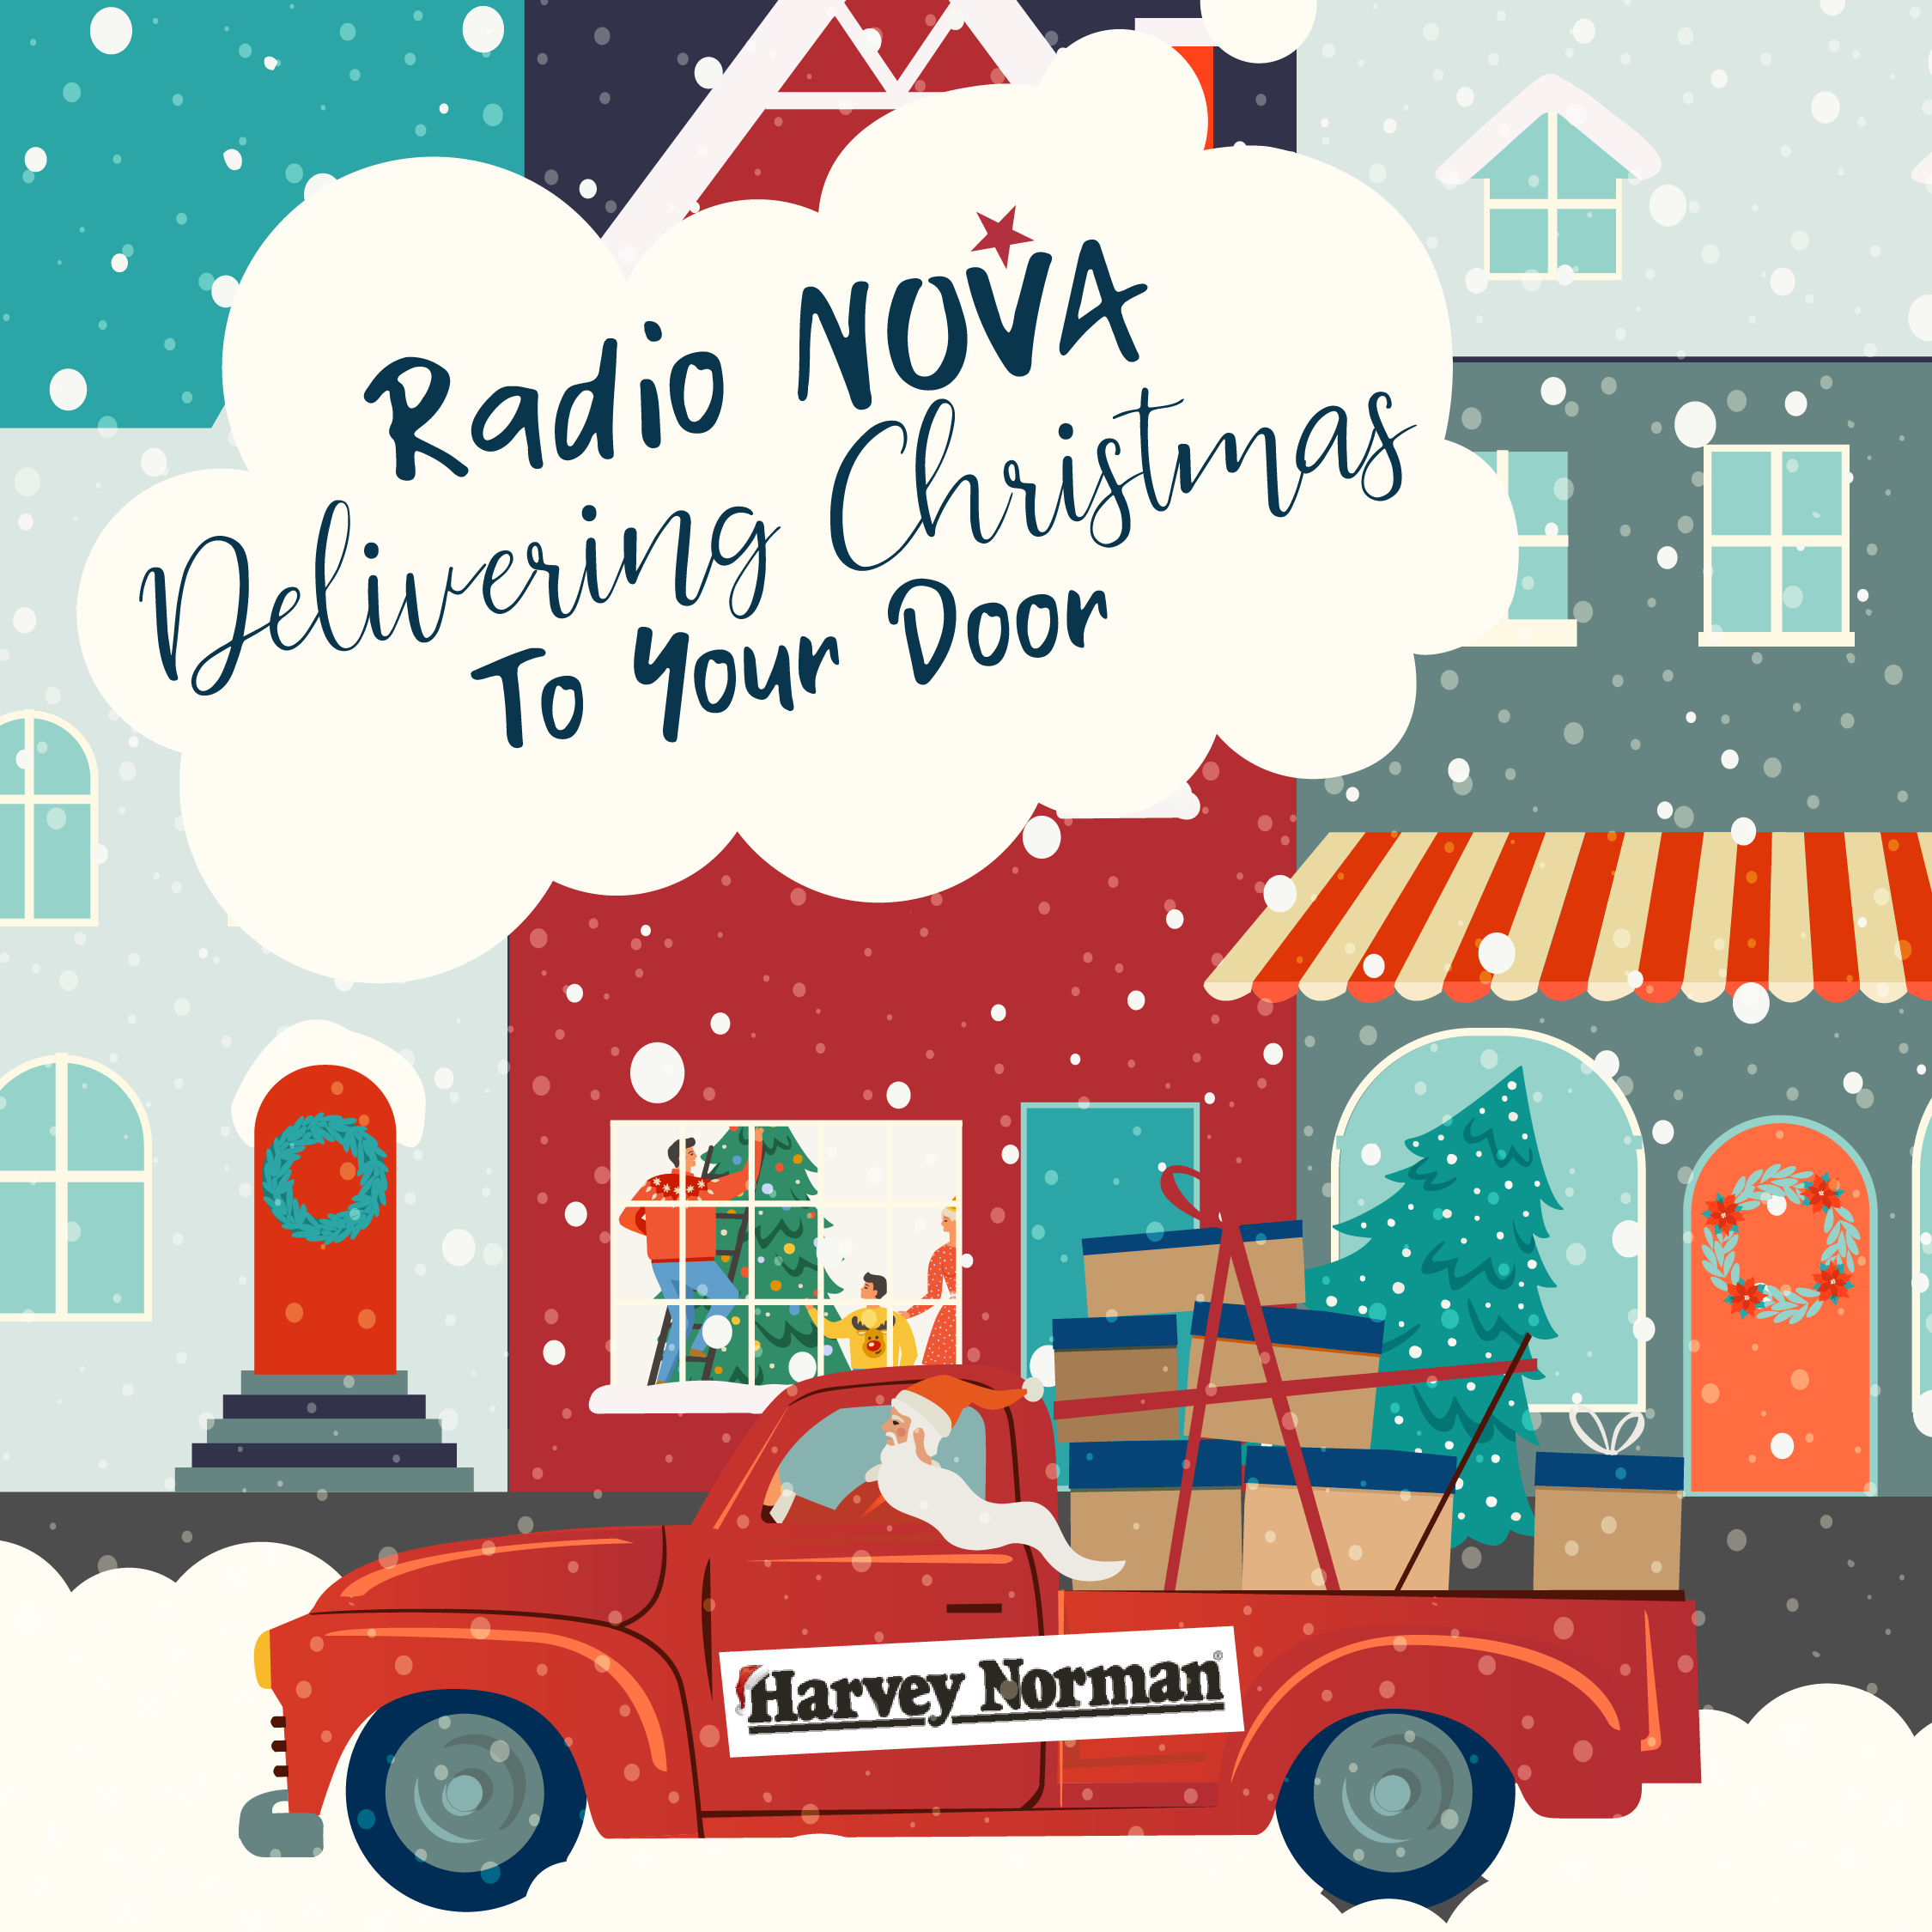 Radio Nova & the Harvey Norman Doorman Bring Xmas to your Door!